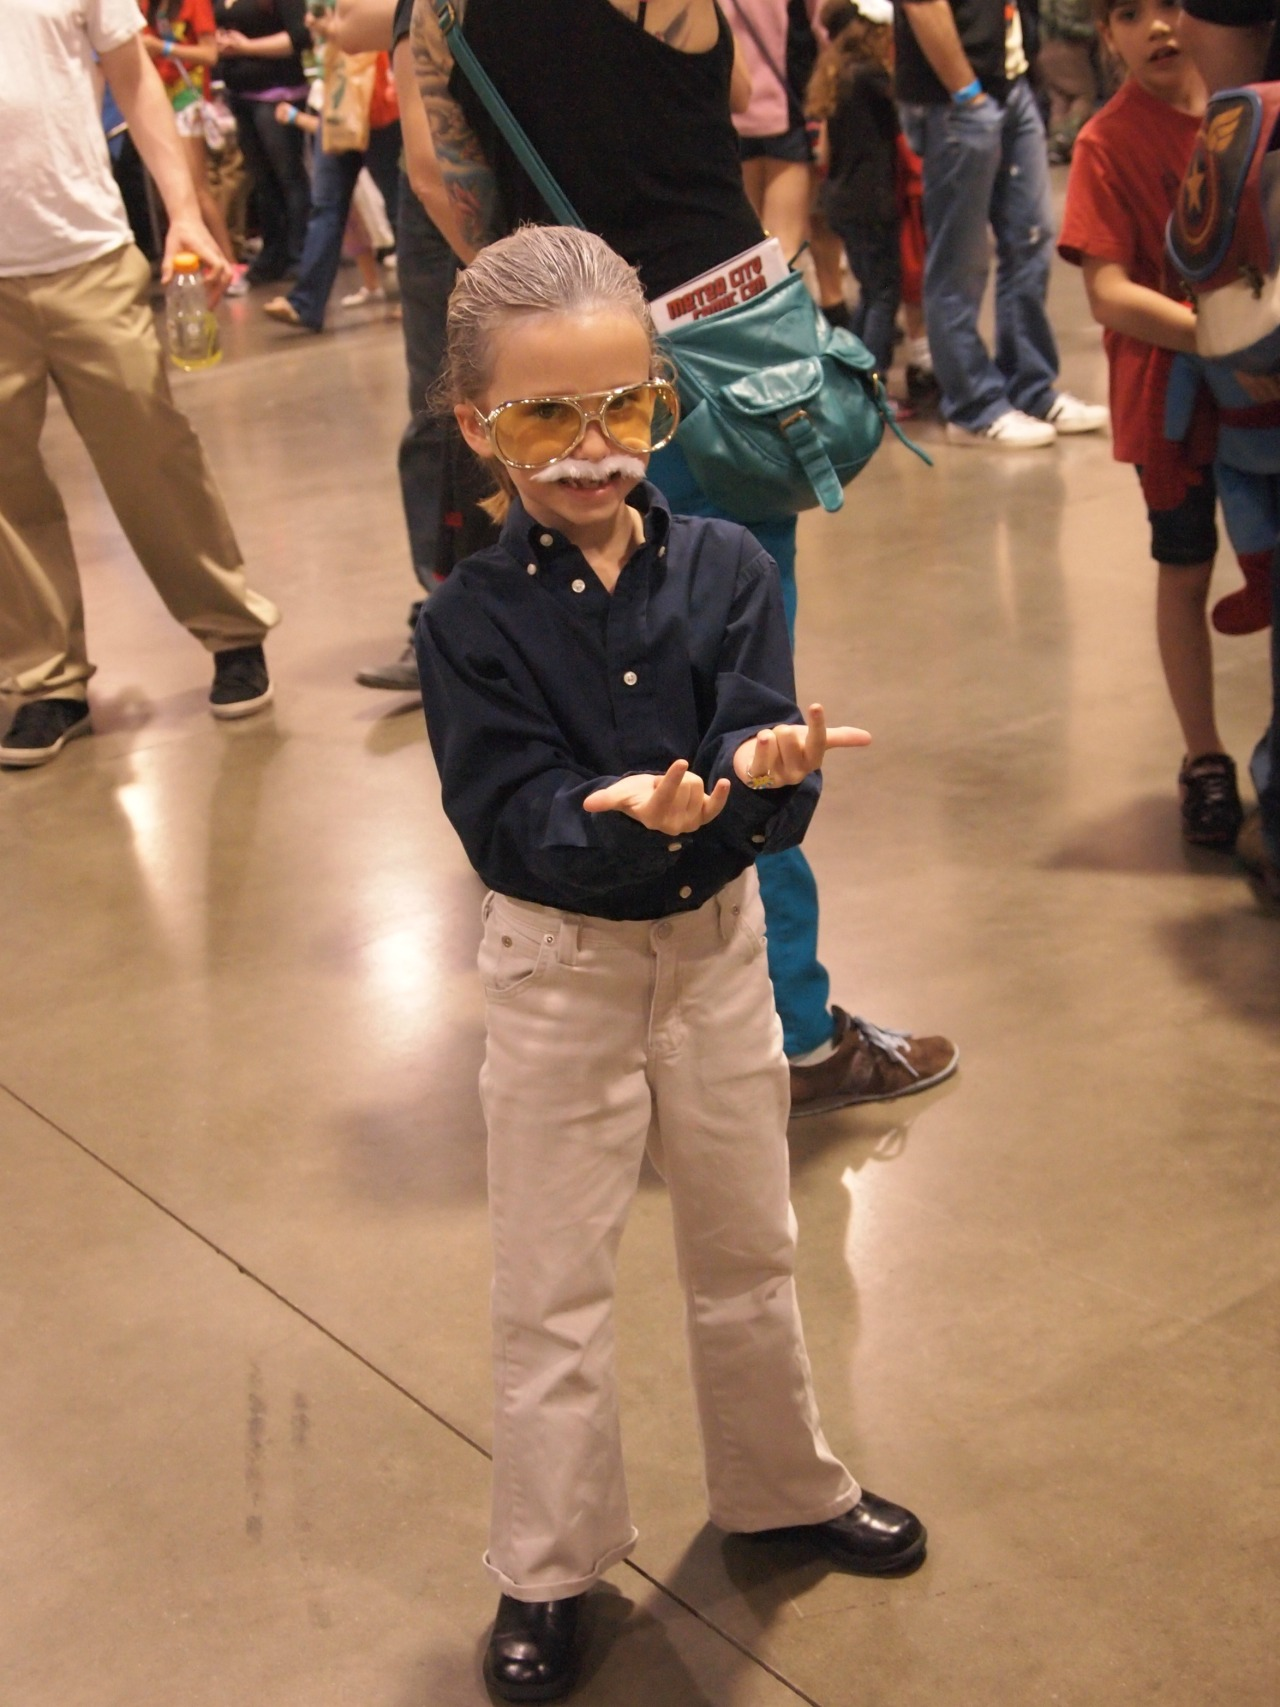 cosmicbrownie:  Little girl dressed as Stan Lee at Motor City Comic con!!!  This blows my mind! lolz